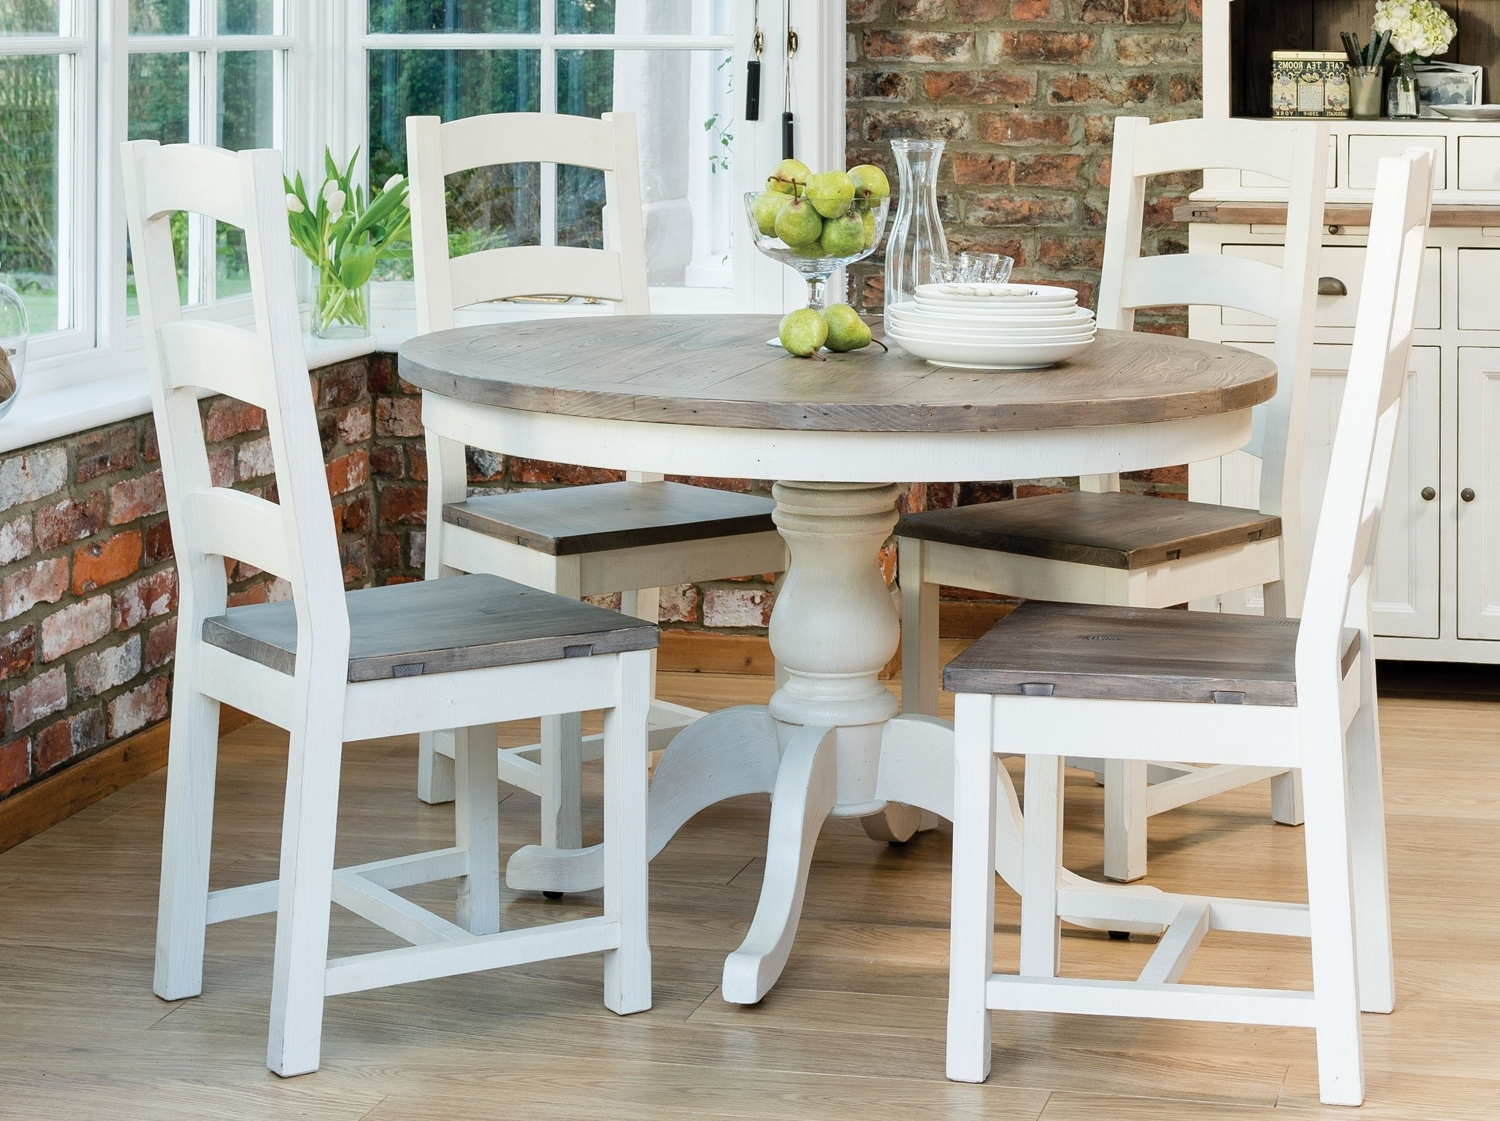 Circular Dining Tables For Latest French Country Round Dining Table From Dansk (View 22 of 25)